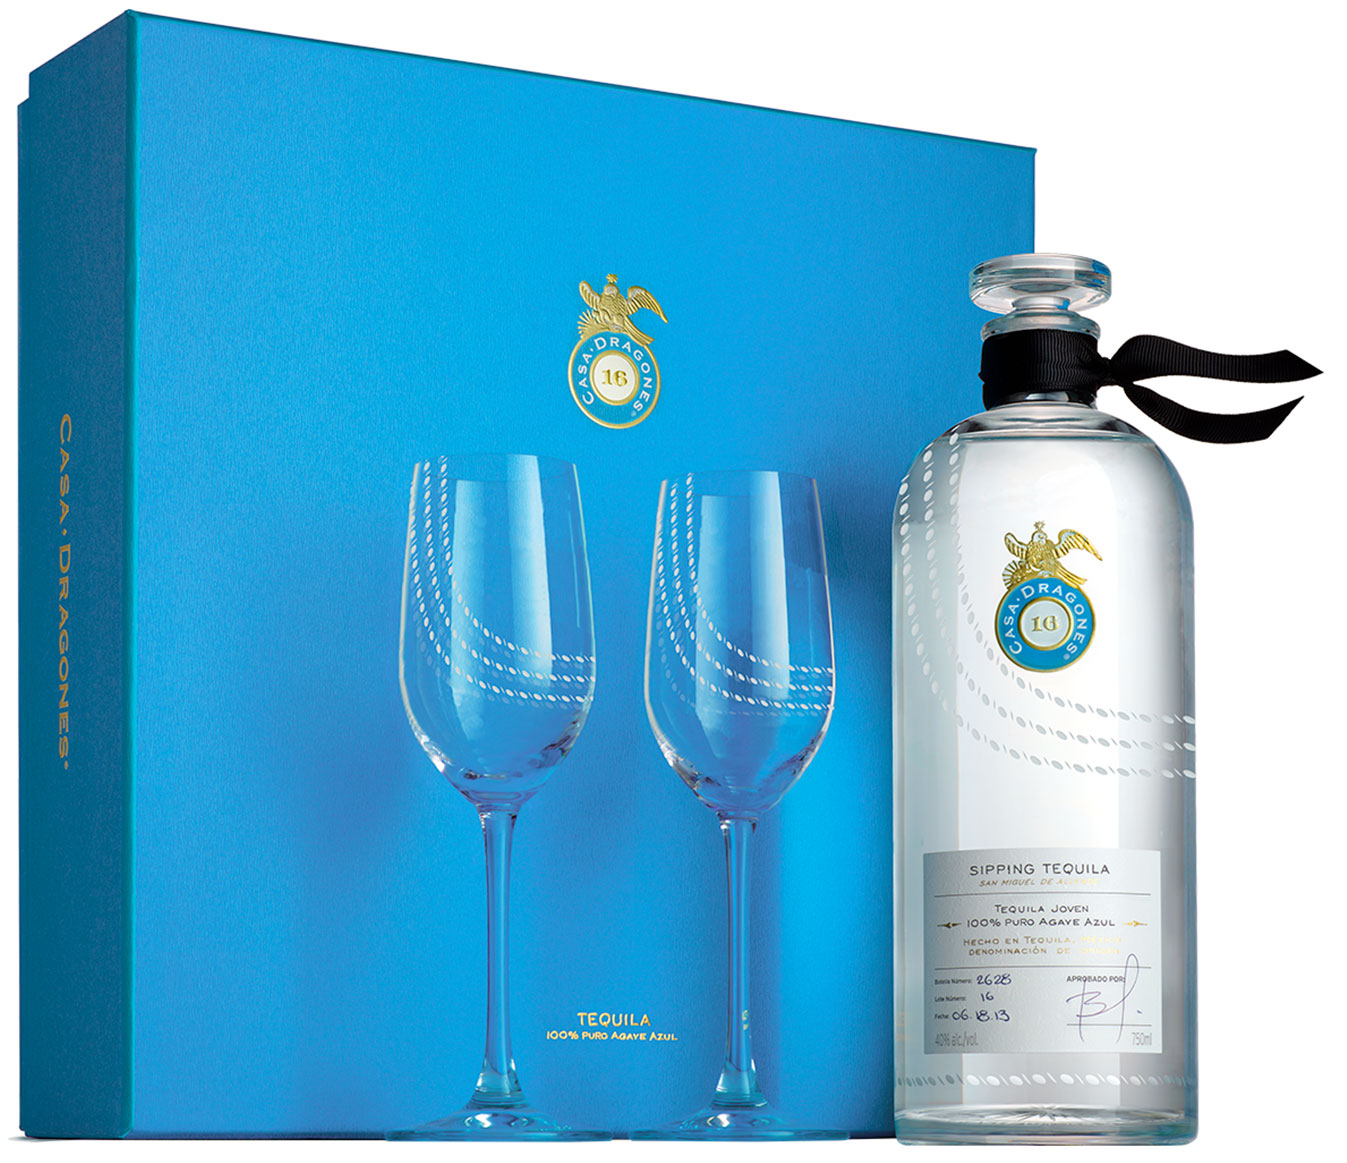 Bottle of Casa Dragones Sipping Tequila with two Reidel glasses, next to a blue holiday gift set box